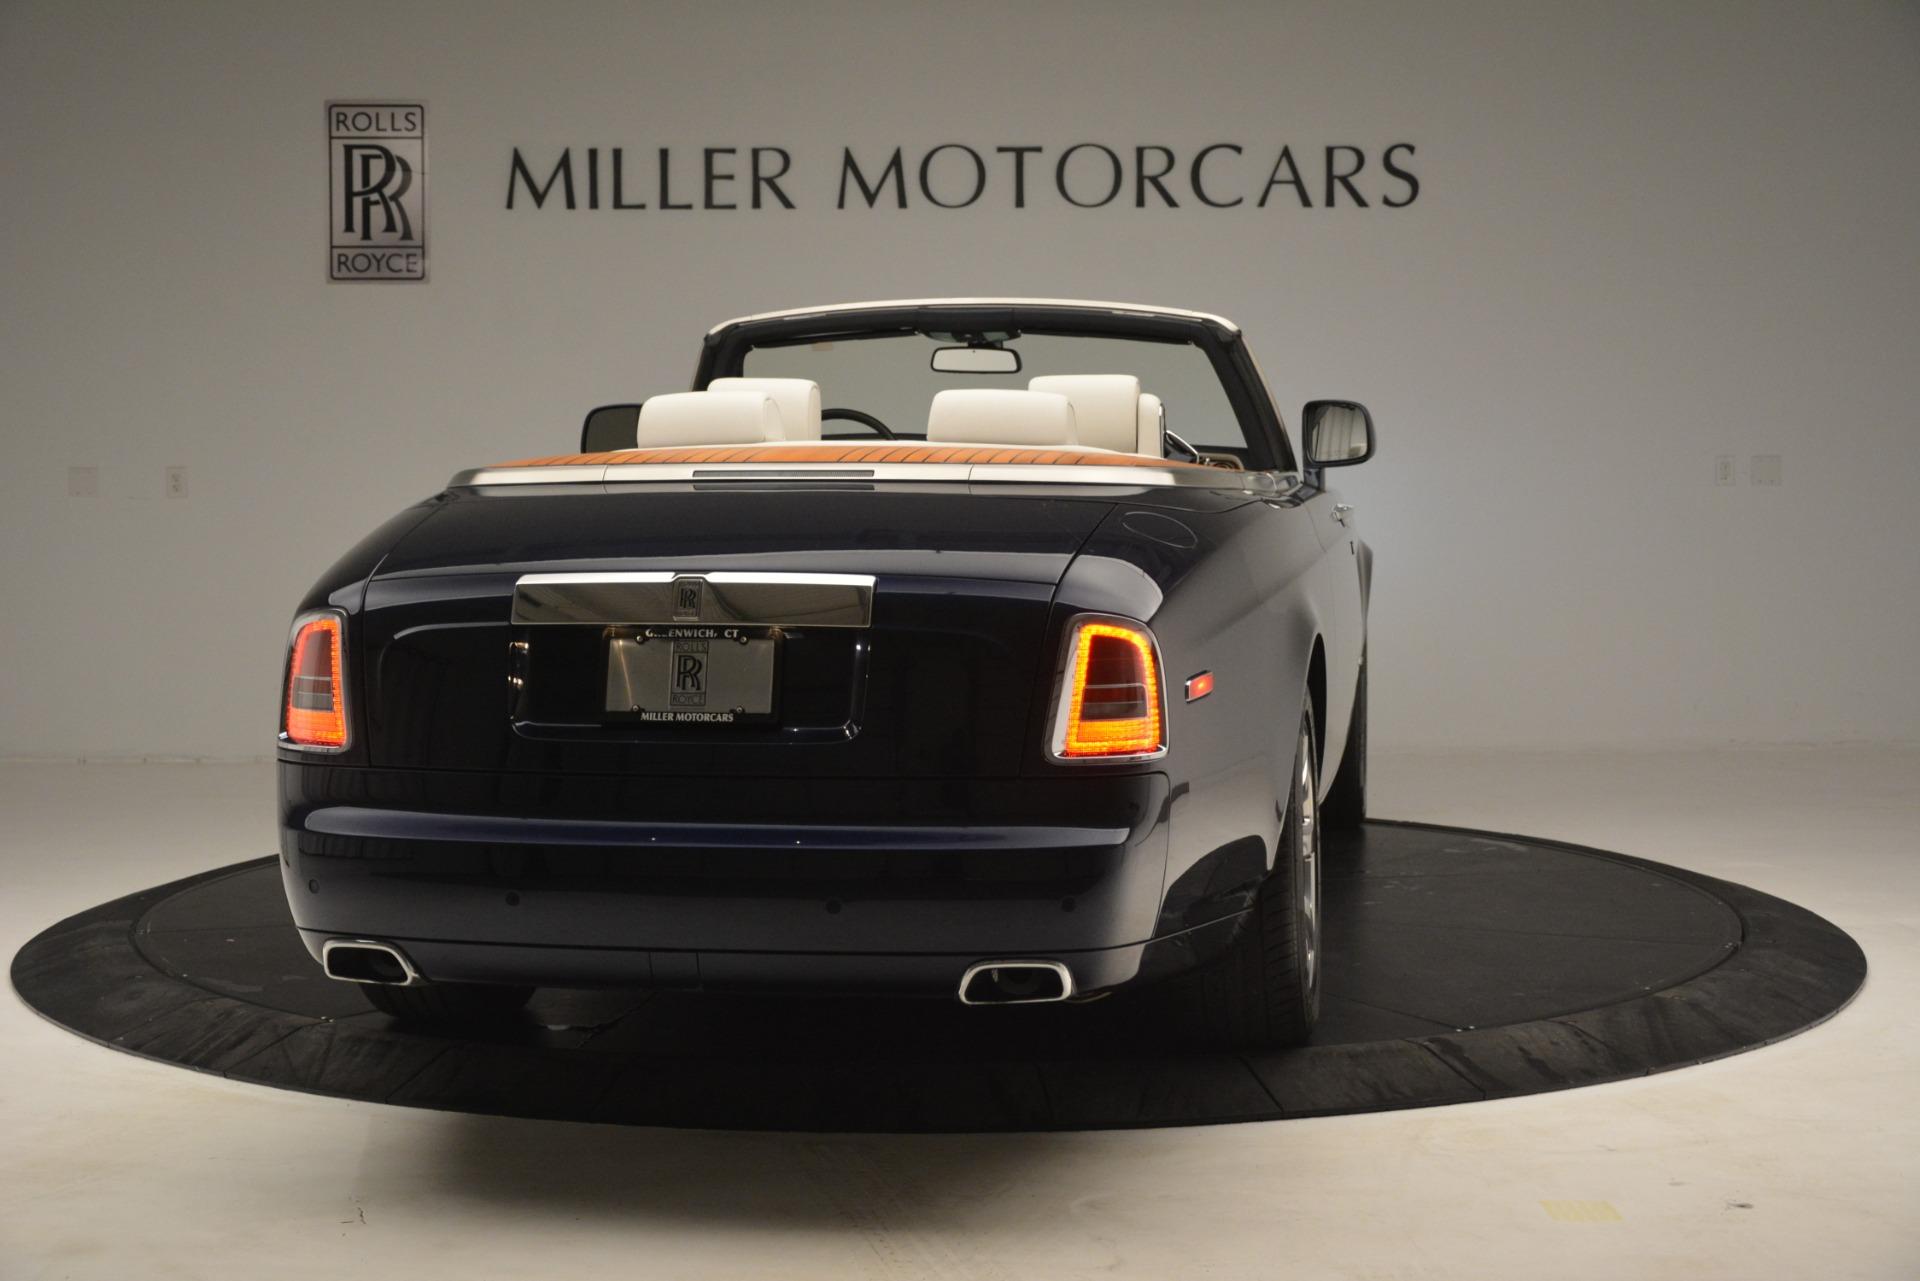 Used 2013 Rolls-Royce Phantom Drophead Coupe  For Sale In Greenwich, CT 2999_p10